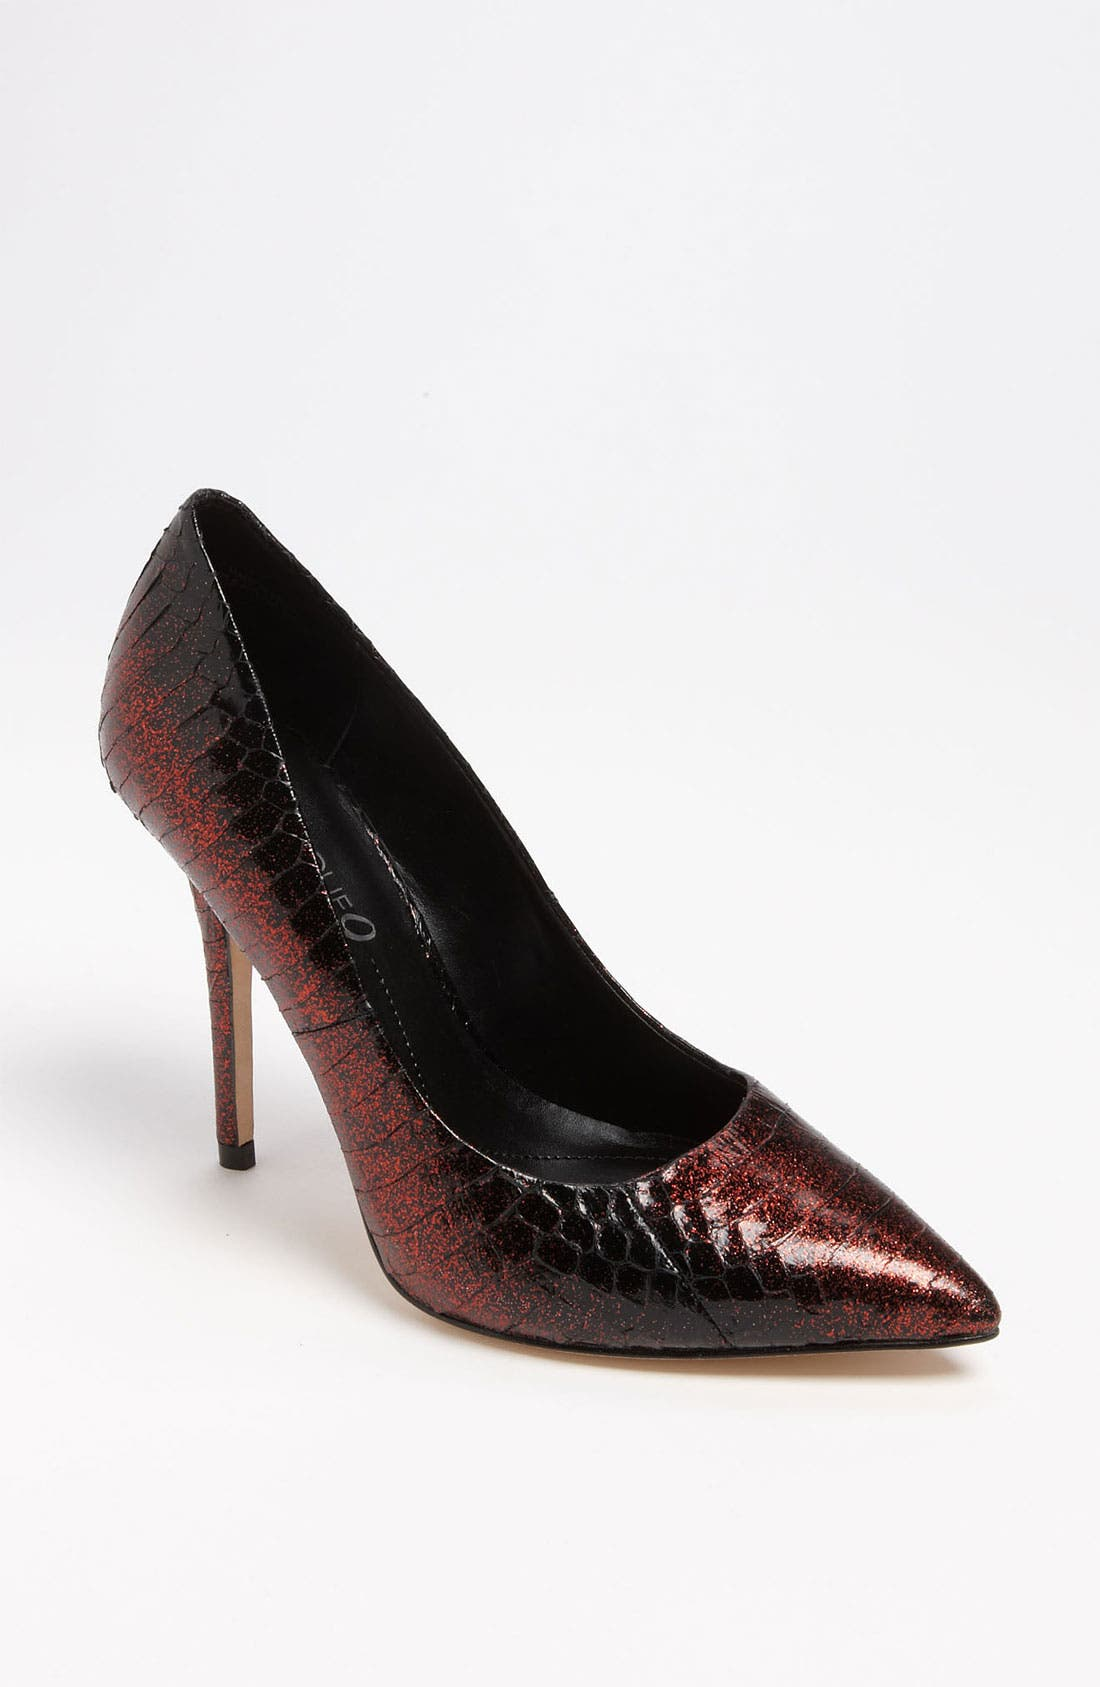 Alternate Image 1 Selected - Boutique 9 'Justine' Pump